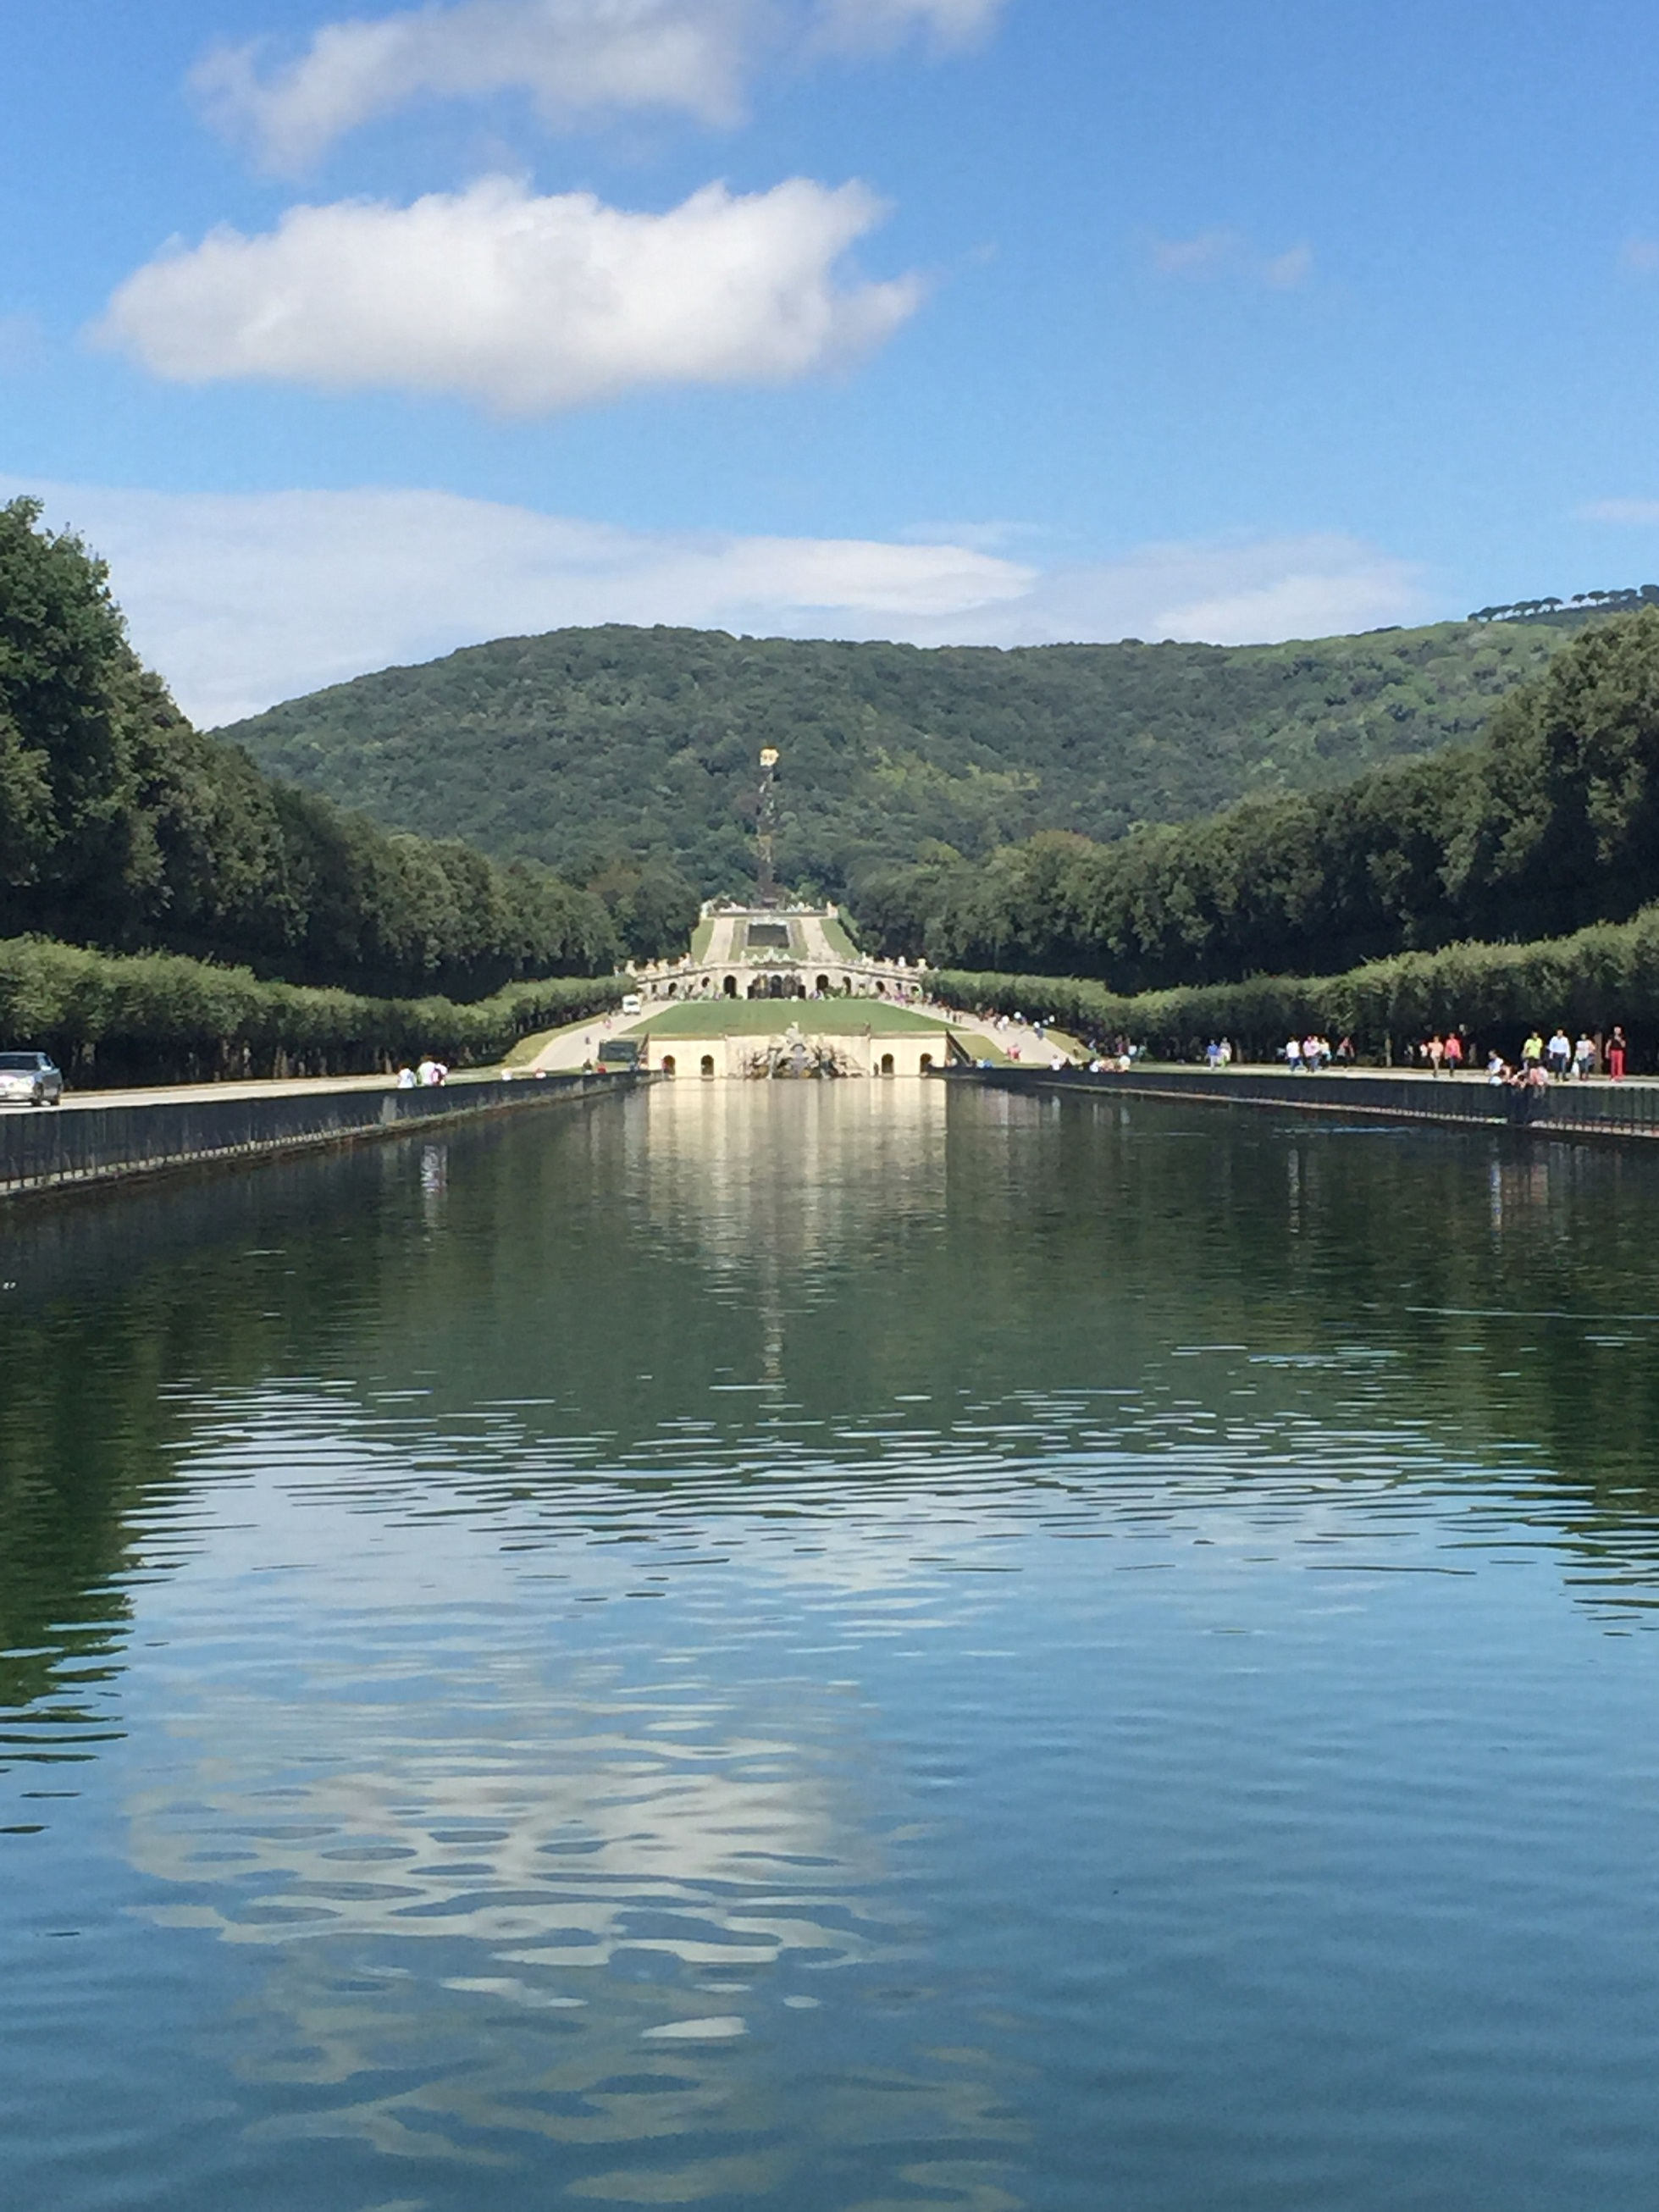 Reggia di Caserta: royalty, faded glory and a lot of waiting around